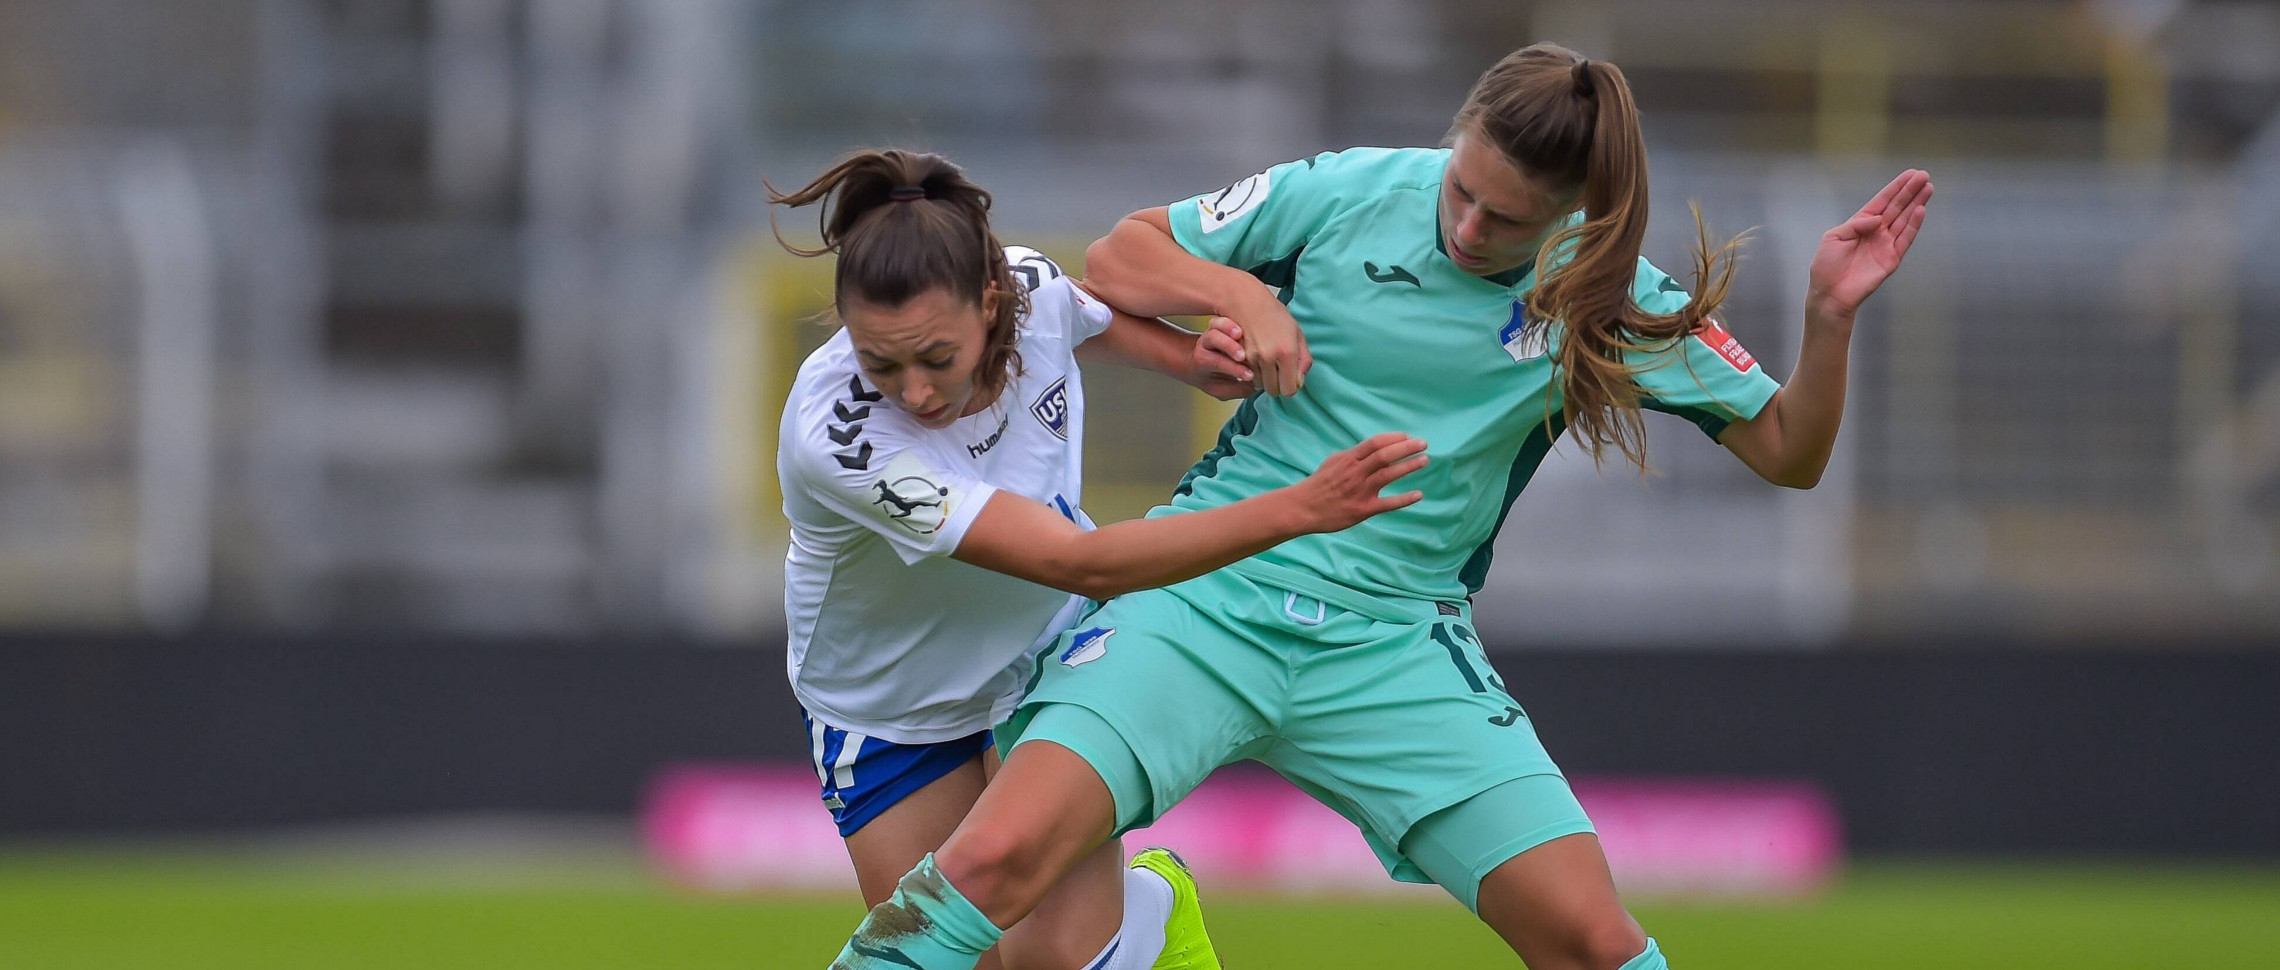 Frauen-Bundesliga (1re journée) : Le Bayern et Wolsburg assurent, Hoffenheim premier leader